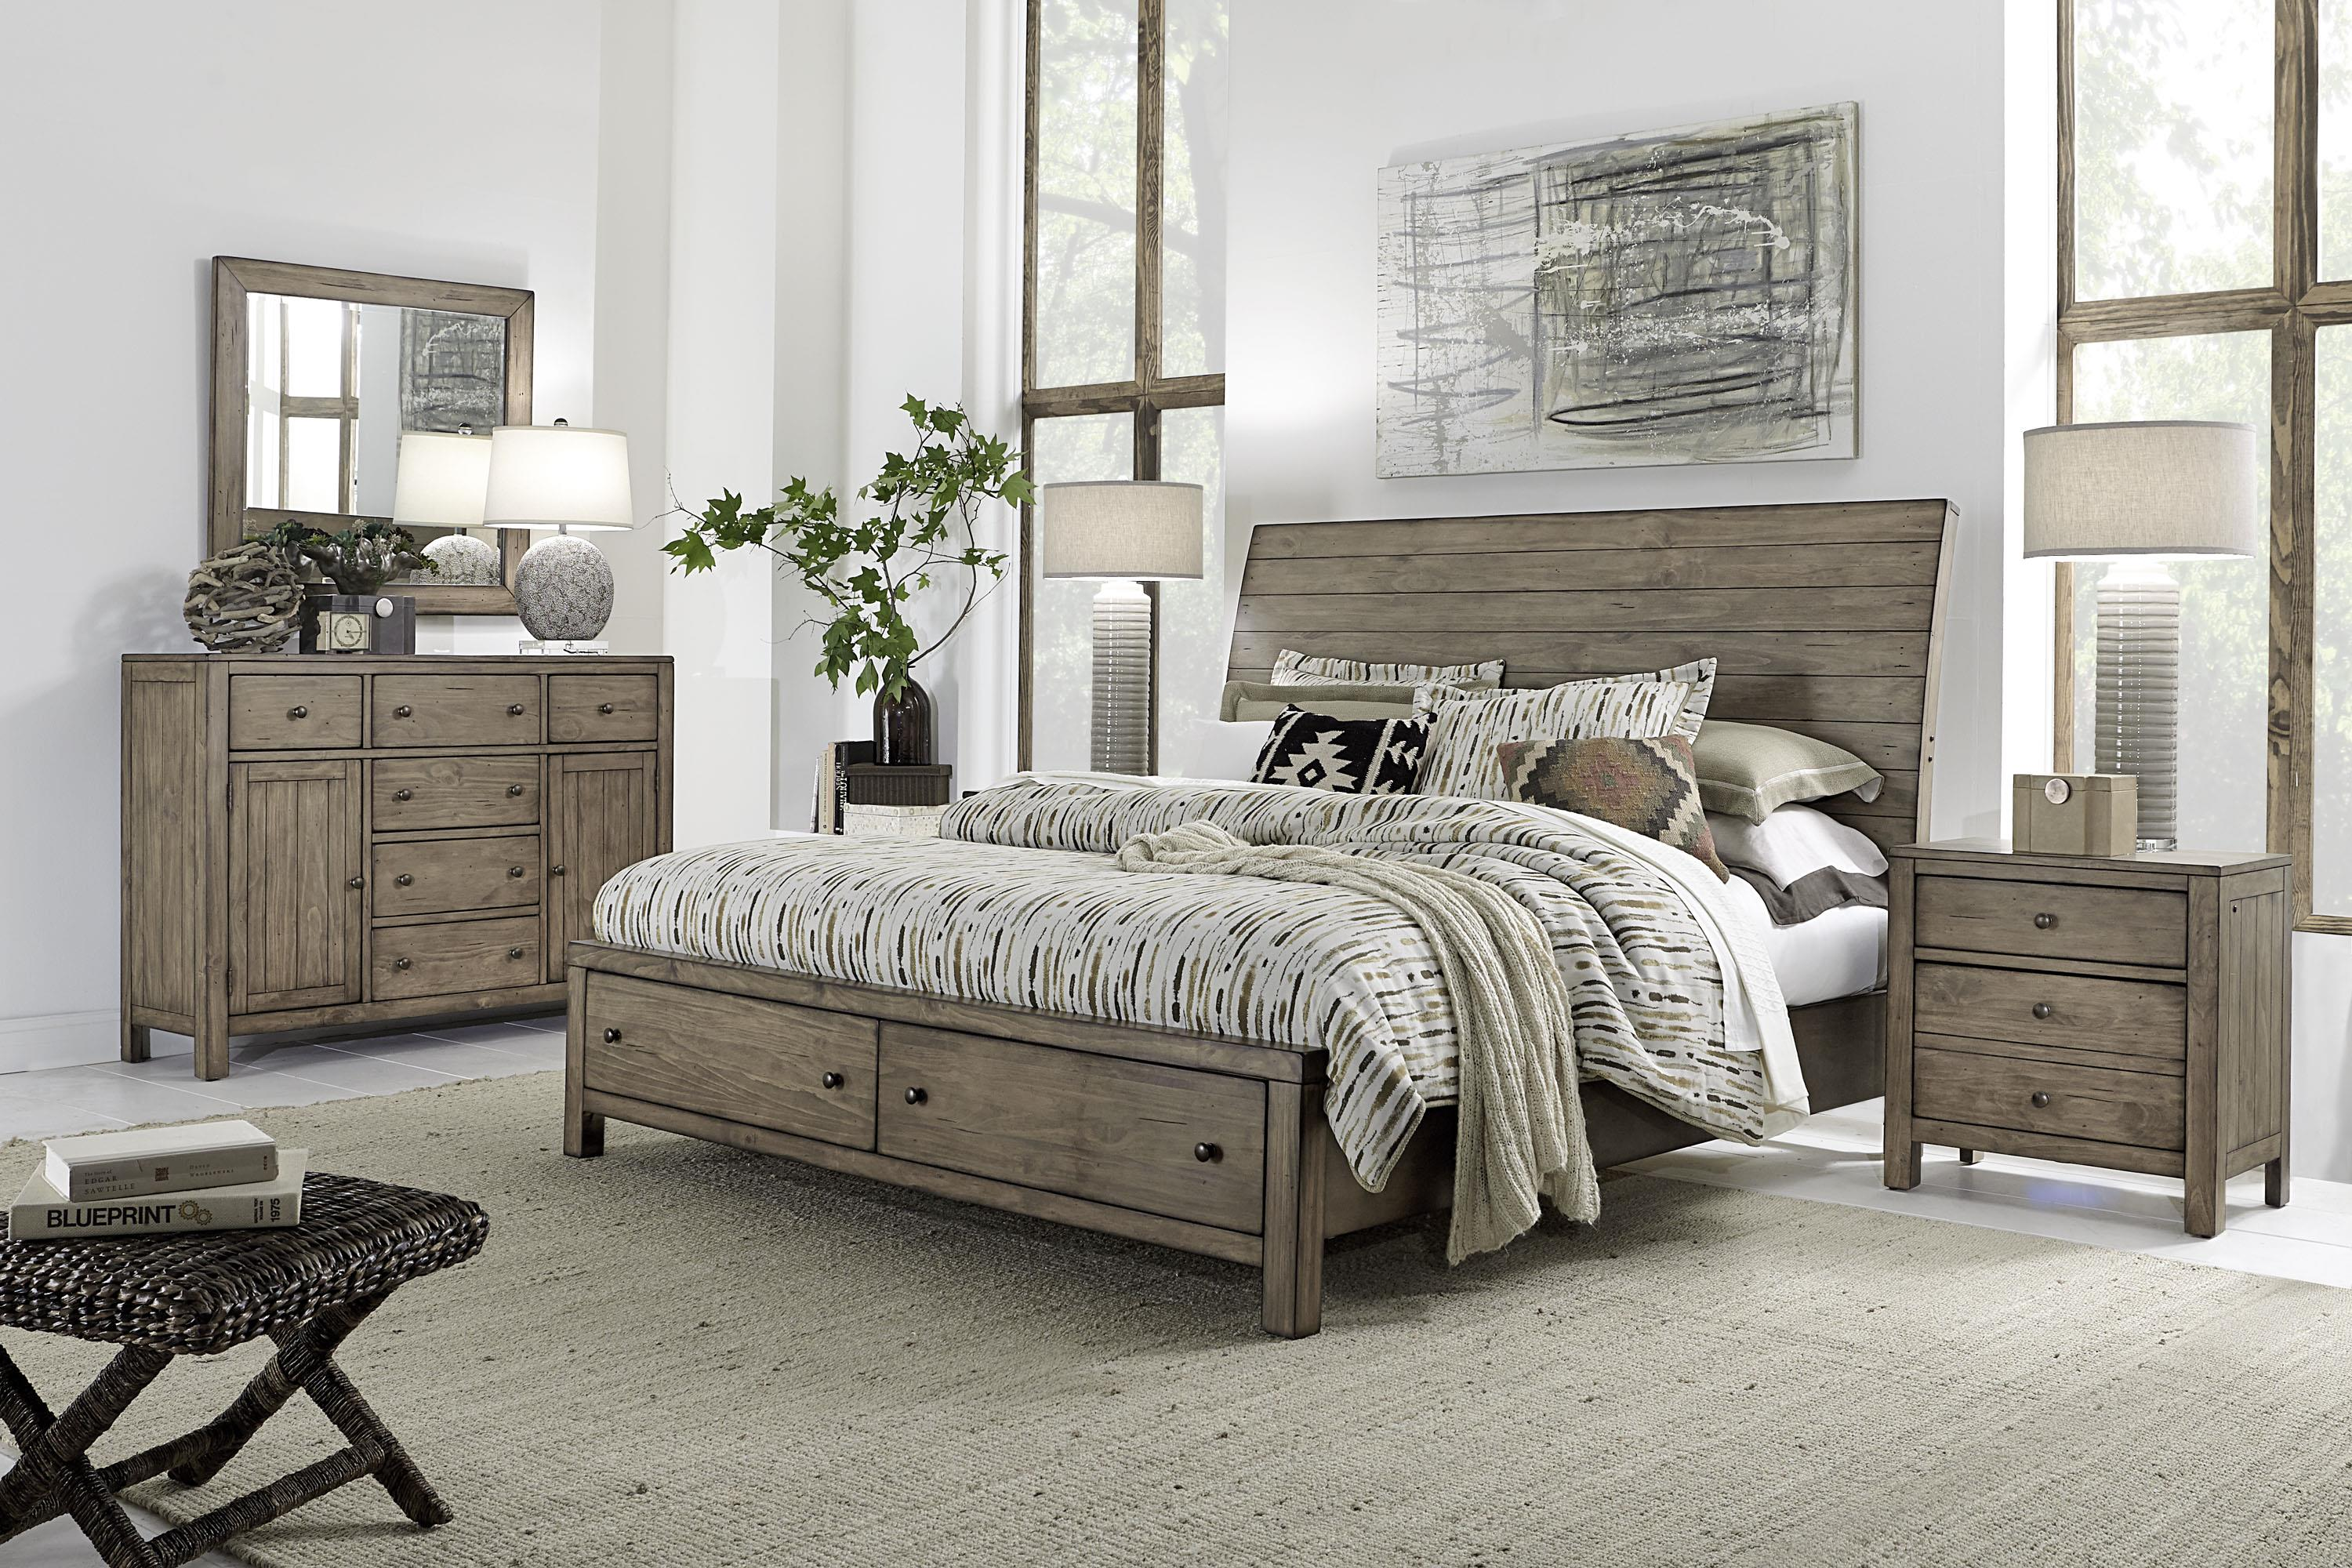 Aspenhome Tildon Queen Bedroom Group Becker Furniture World Bedroom Group